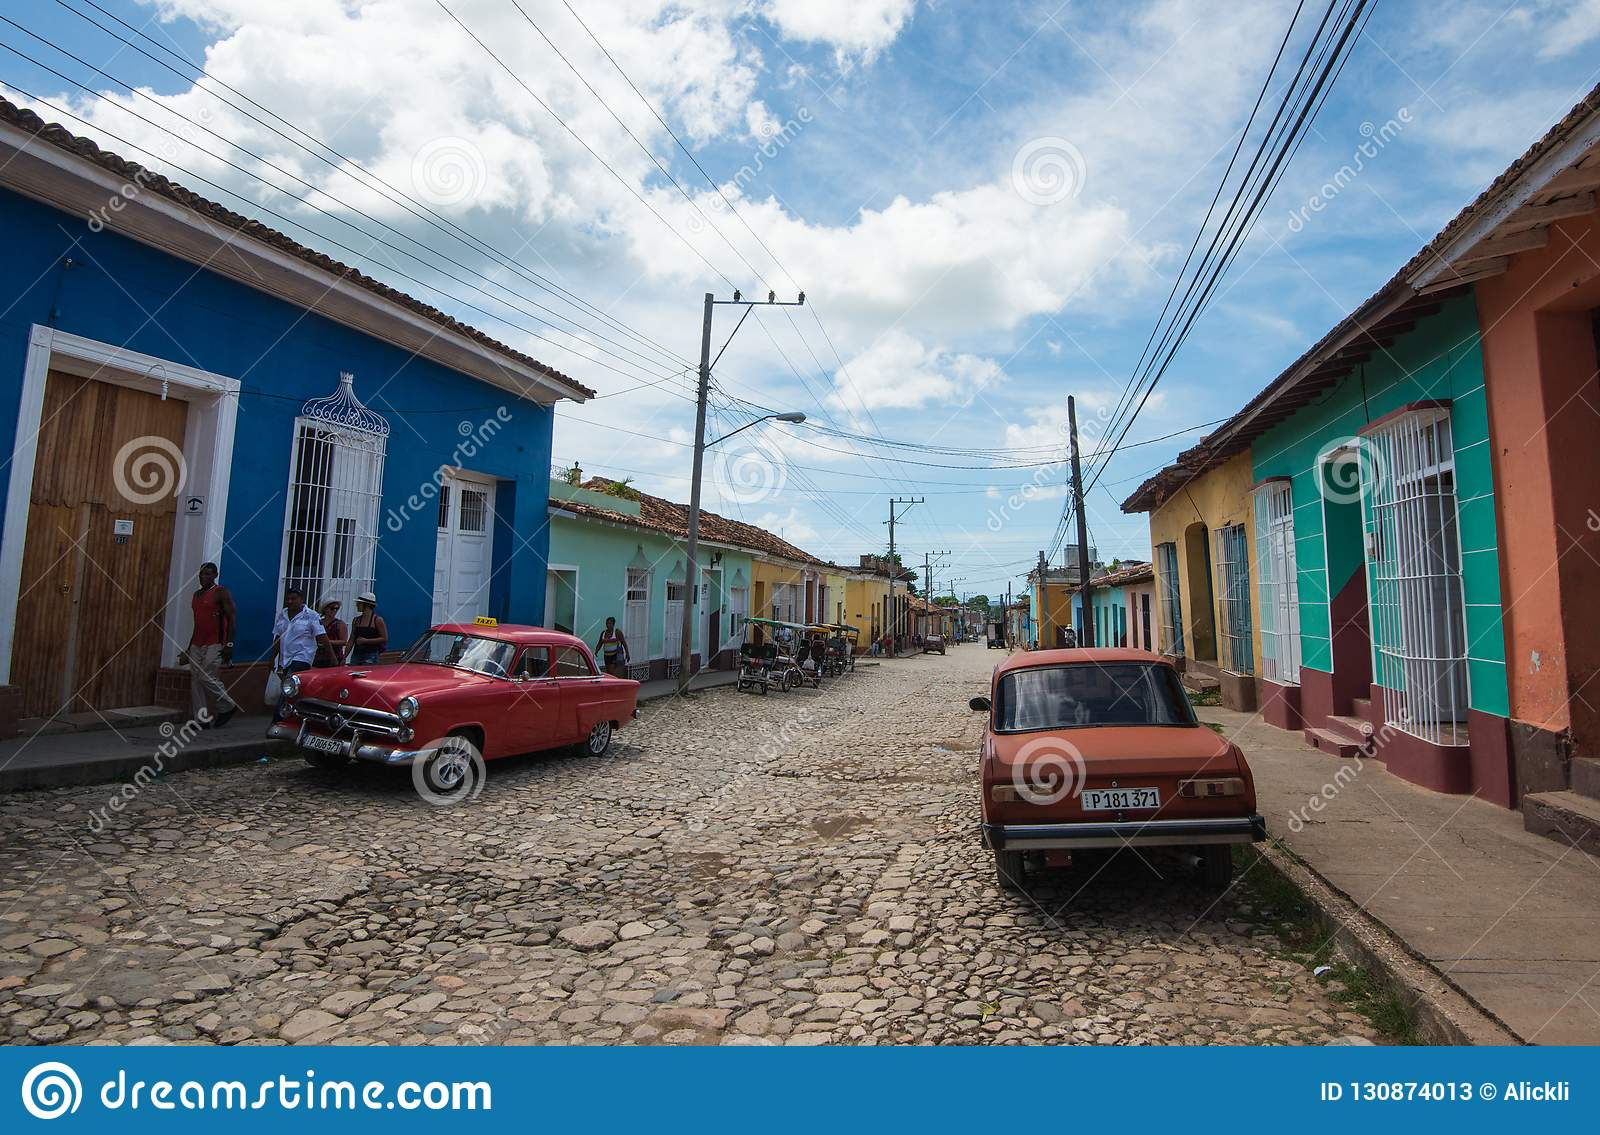 Colorful Caribbean aged village with cobblestone street, classic red car and Colonial house, Trinidad, Cuba, America.